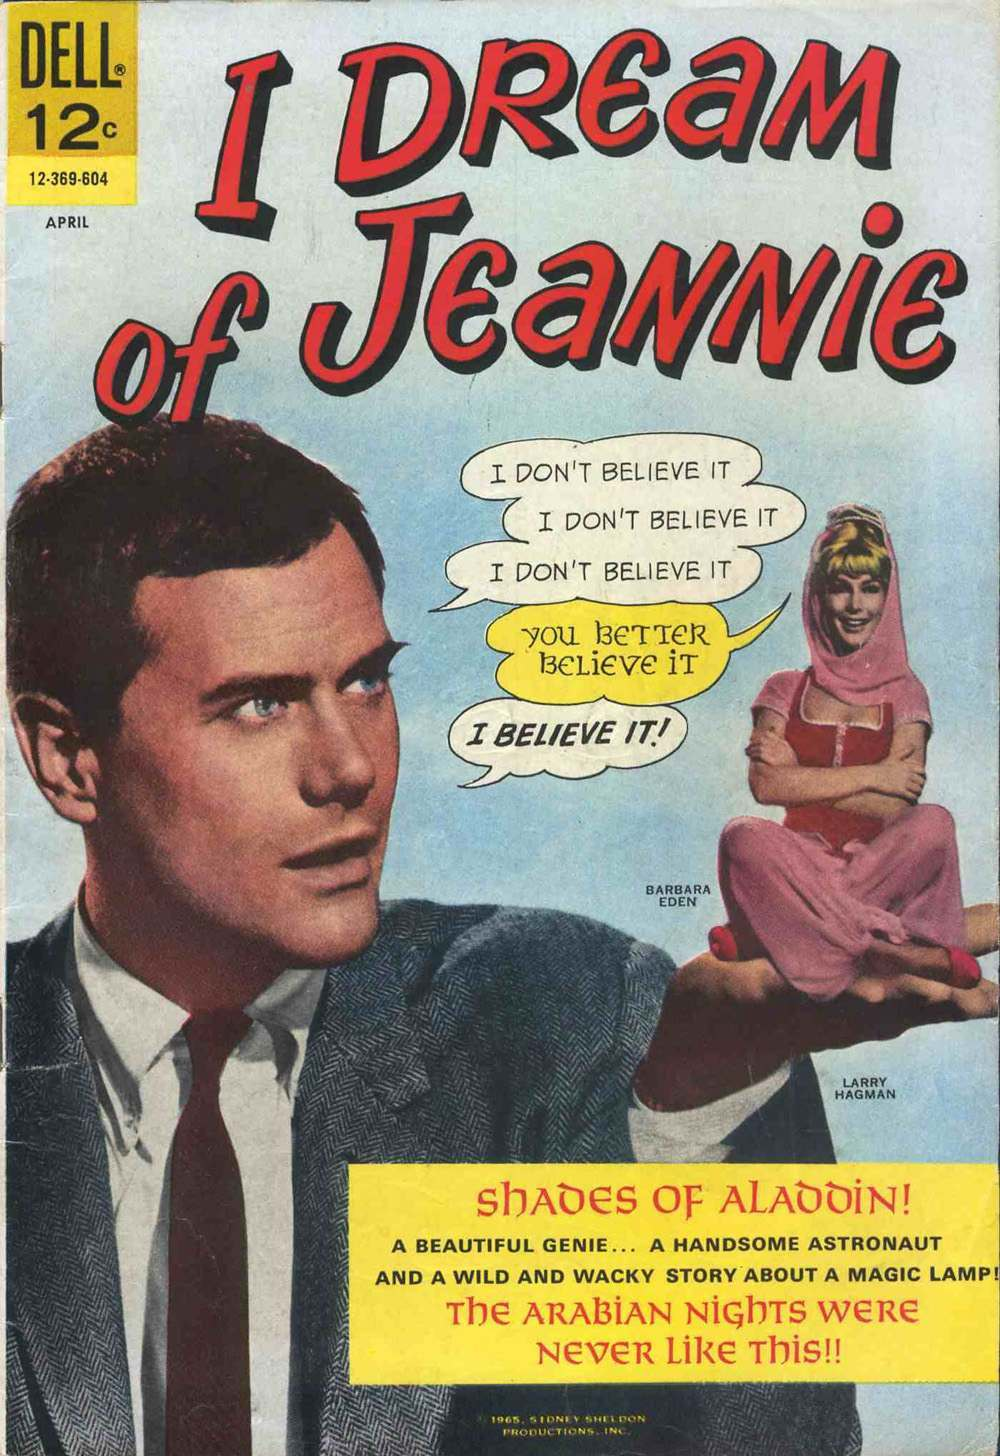 I Dream of Jeannie No.1 (April 1966) Dell